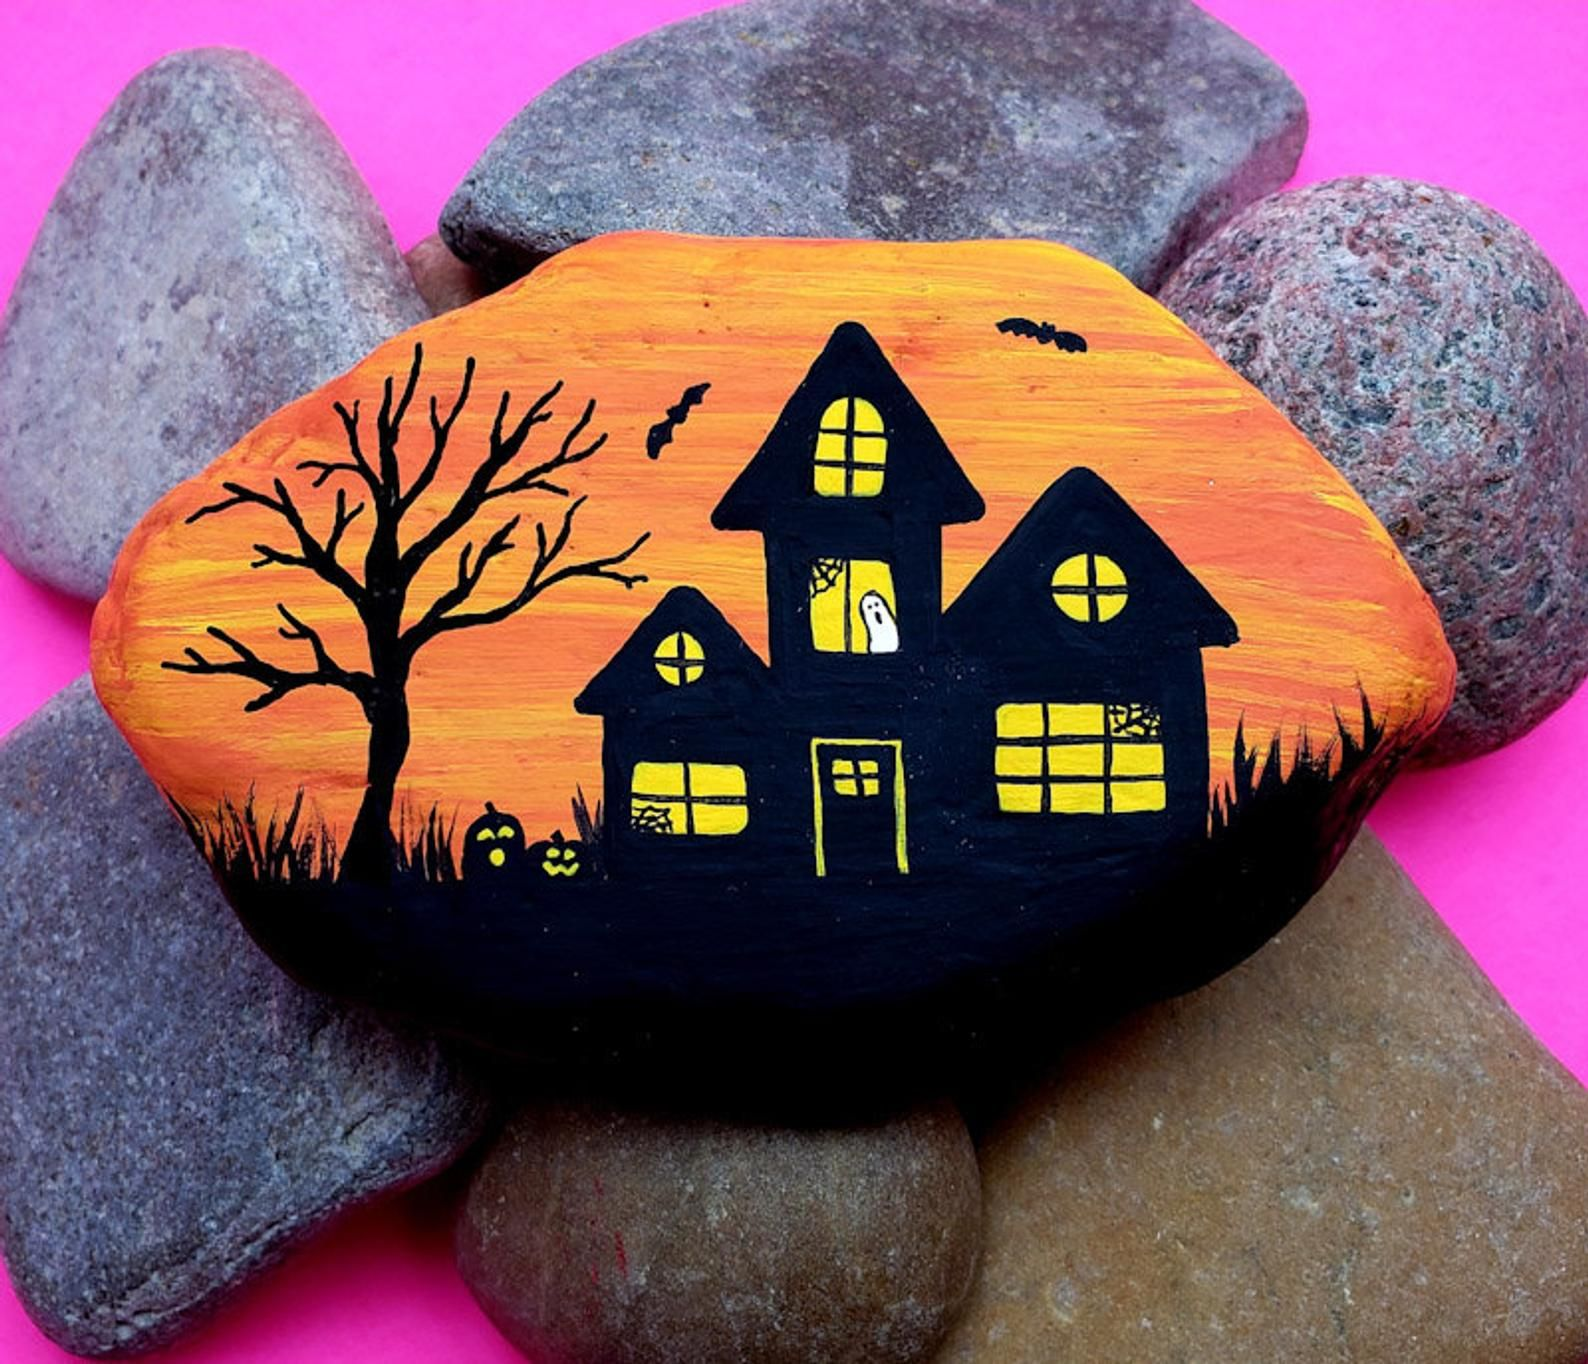 House On The Rock Halloween 2020 Haunted House Painted Rock Tutorial | Etsy in 2020 | Painted rock